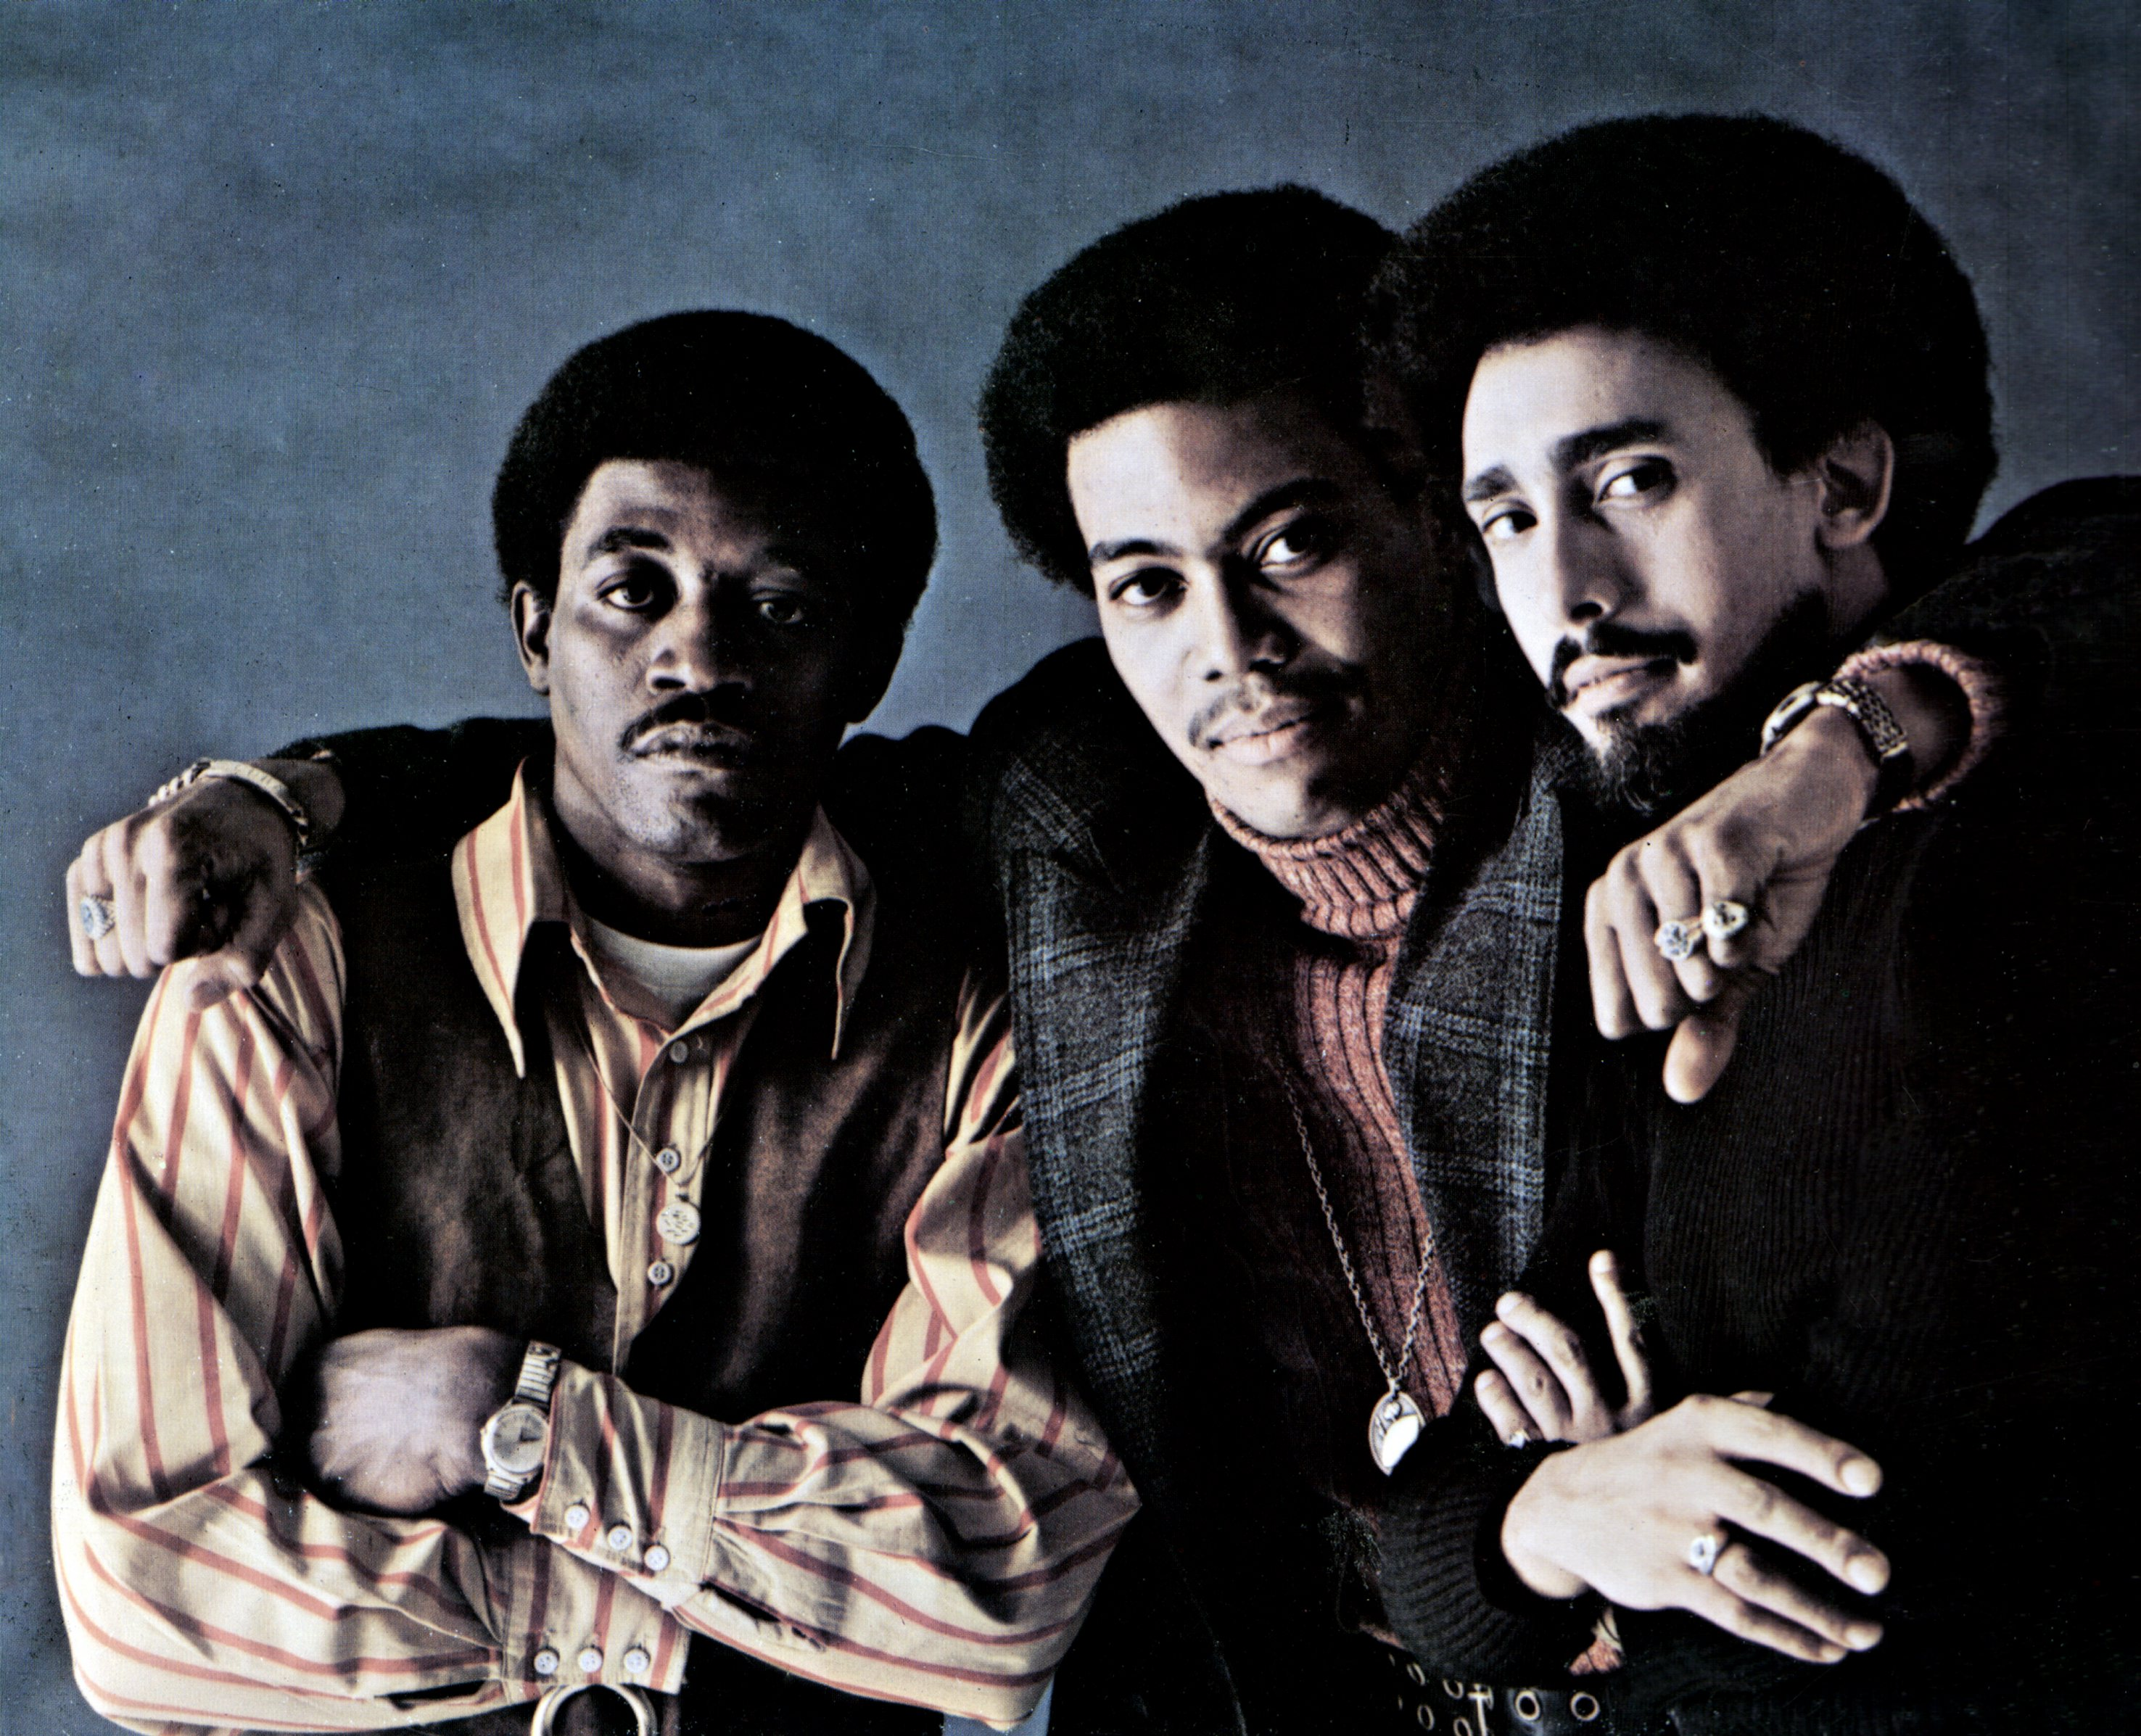 Cuba Gooding Sr., center, is pictured with Luther Simmons, left, and Tony Silvester of the Main Ingredient in 1974